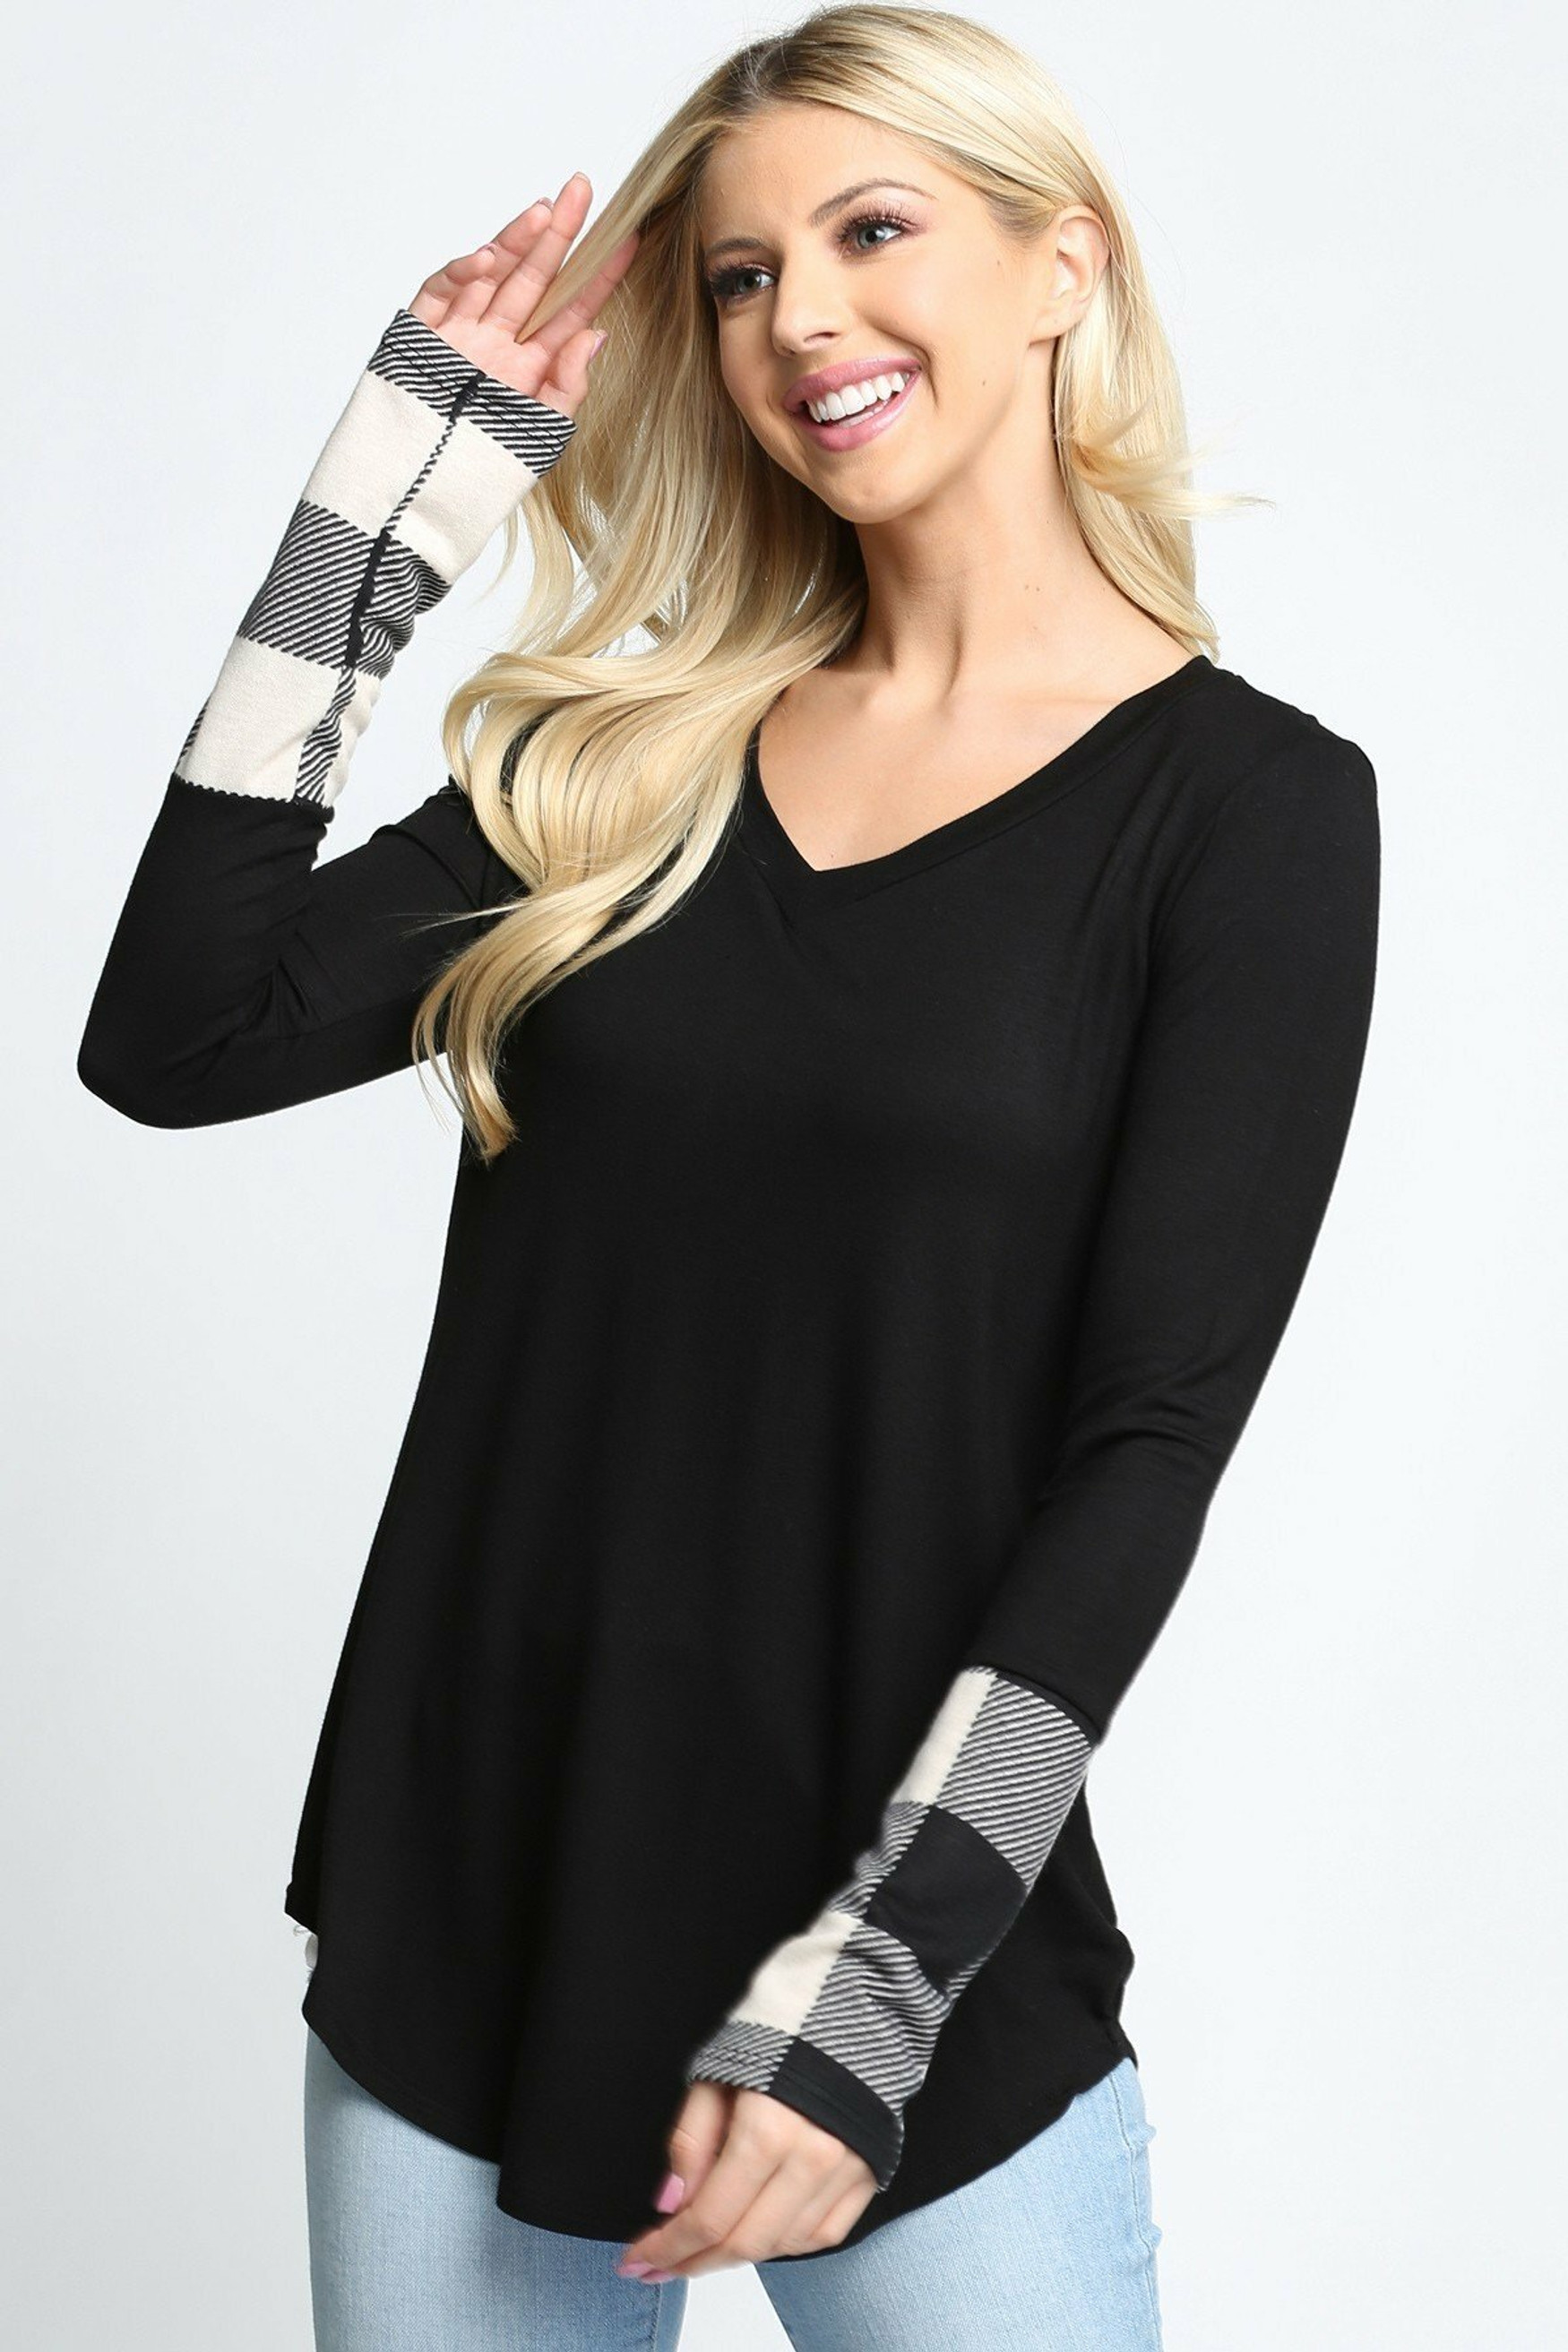 Plaid Cuff Solid Contrast V Neck Long Sleeve Plus Size Top